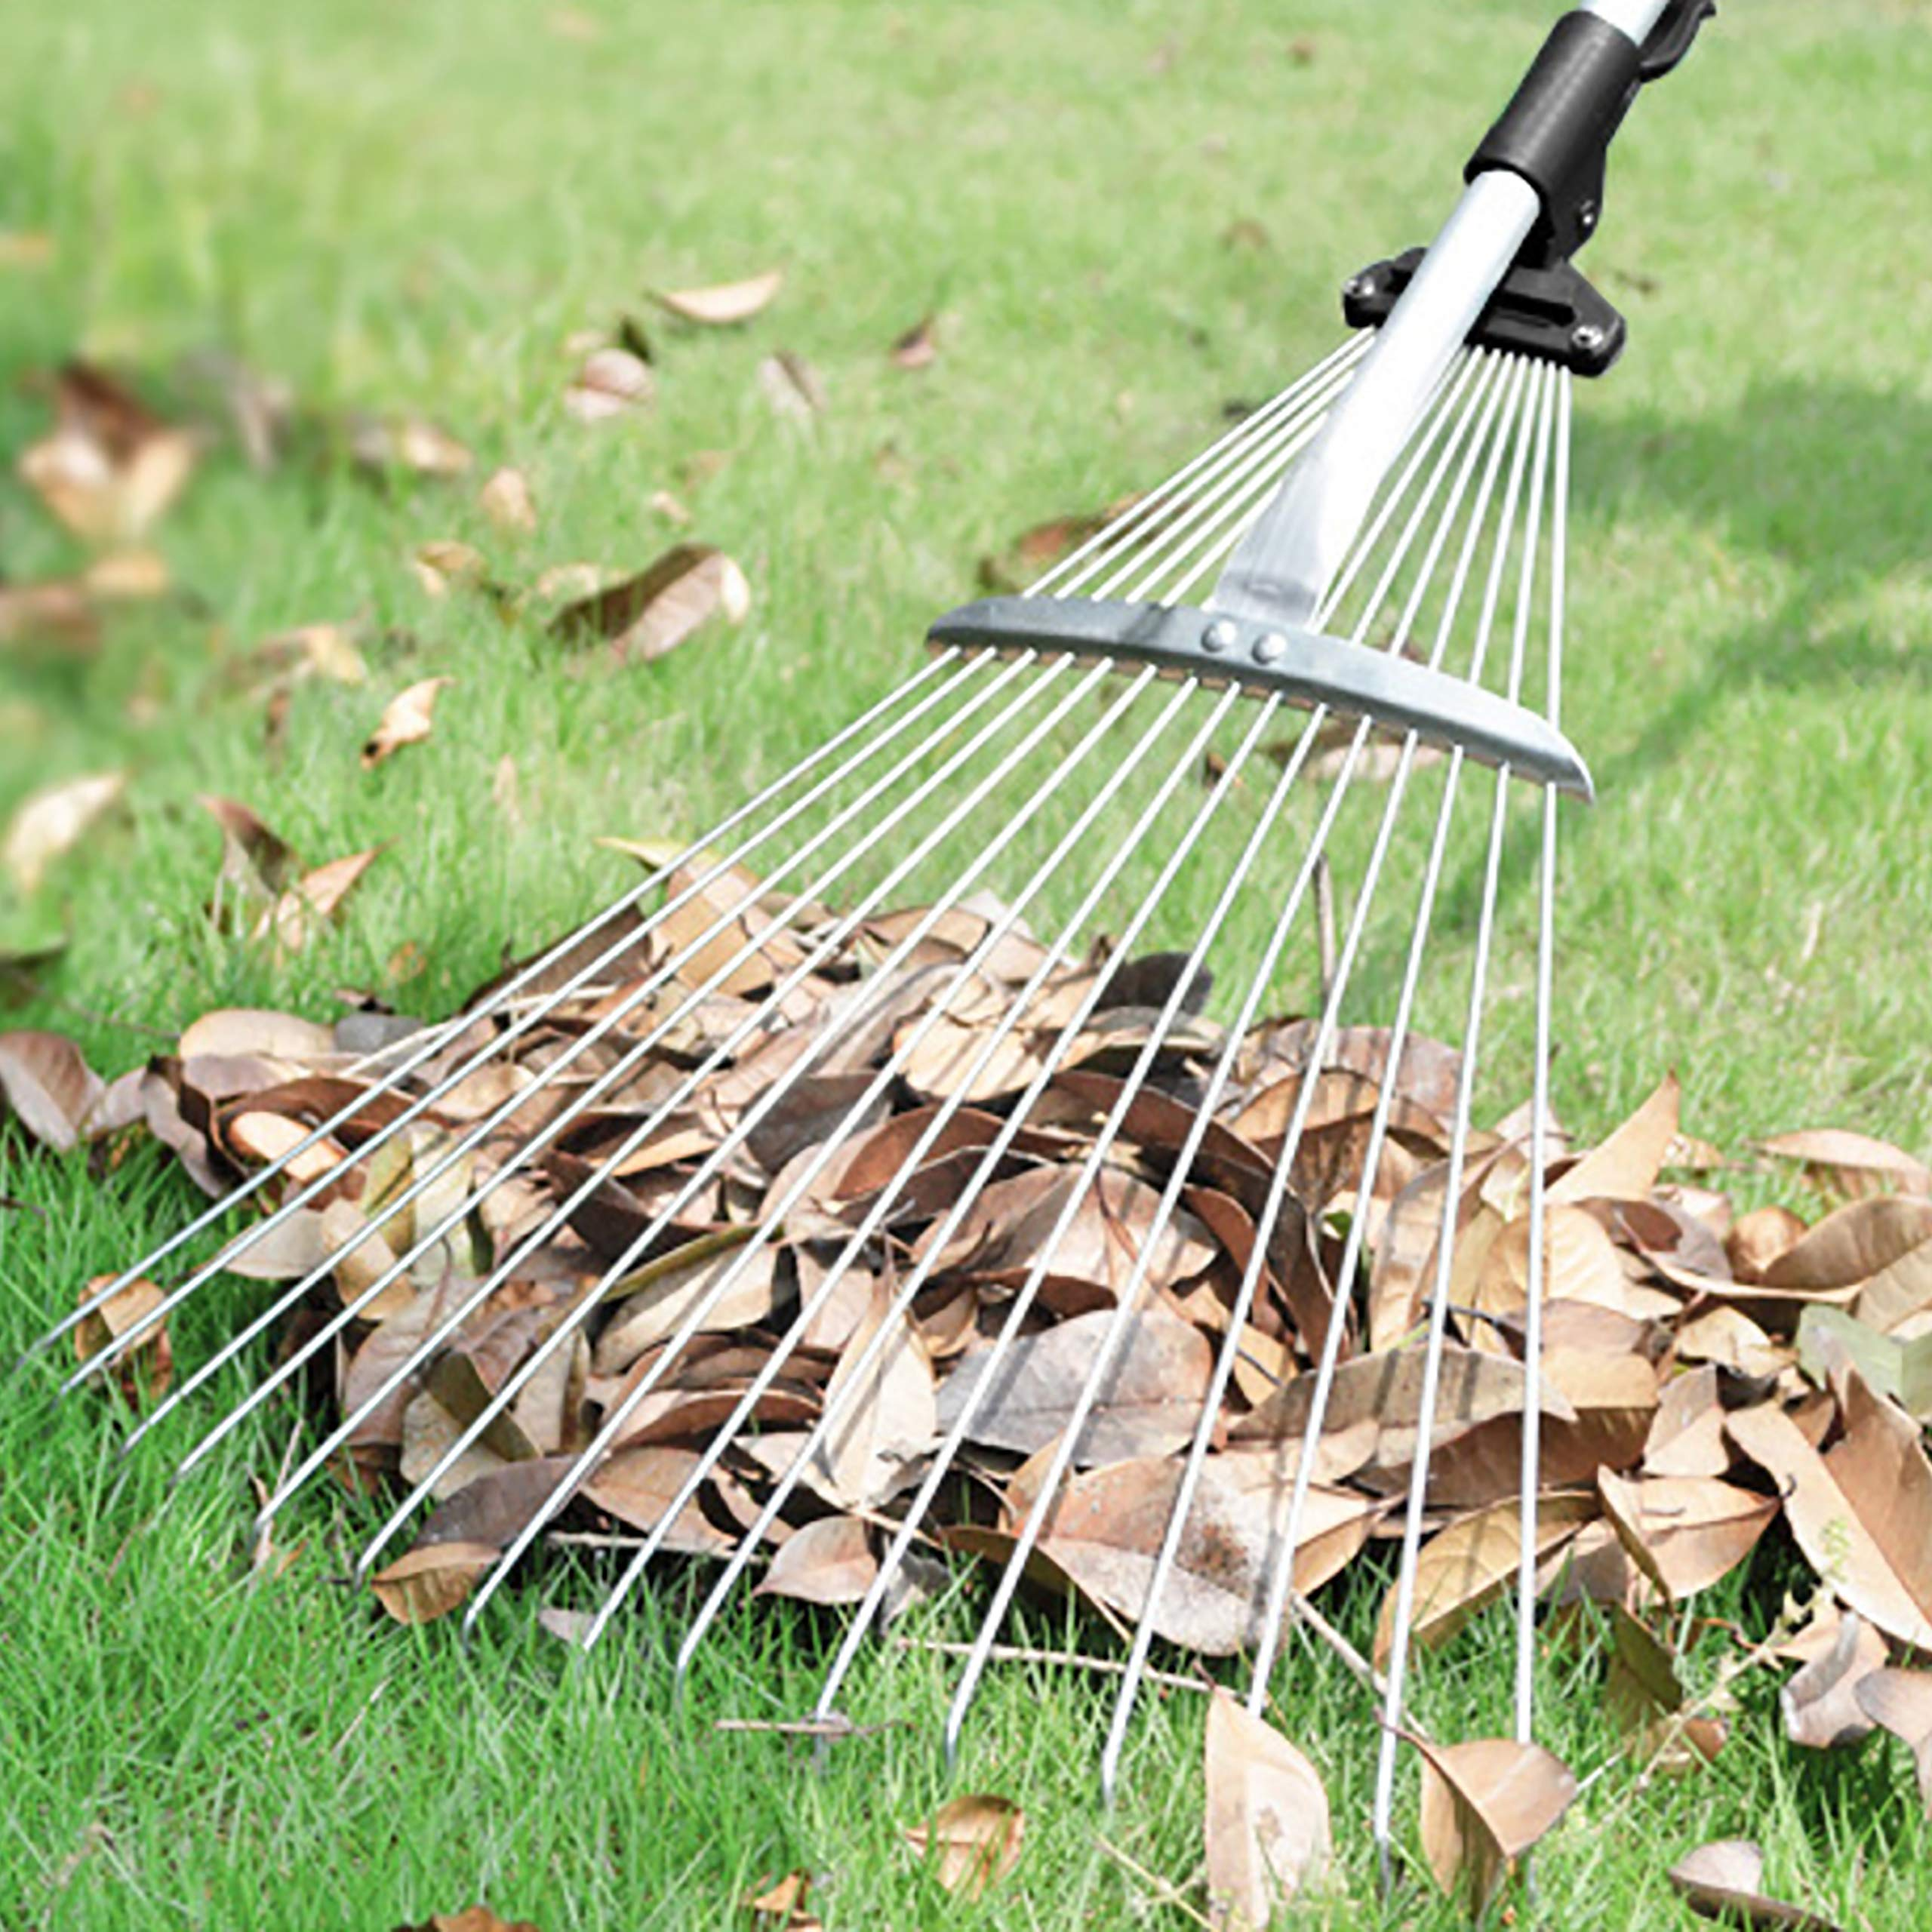 Gonicc 63 inch Professional Adjustable Garden Leaf Rake, Expanding Metal Rake - Adjustable Folding Head From 7 Inch to 22 Inch. Collect Leaf Among Delicate Plants,Lawns and Yards, Hand Tools Scissors. by gonicc (Image #7)